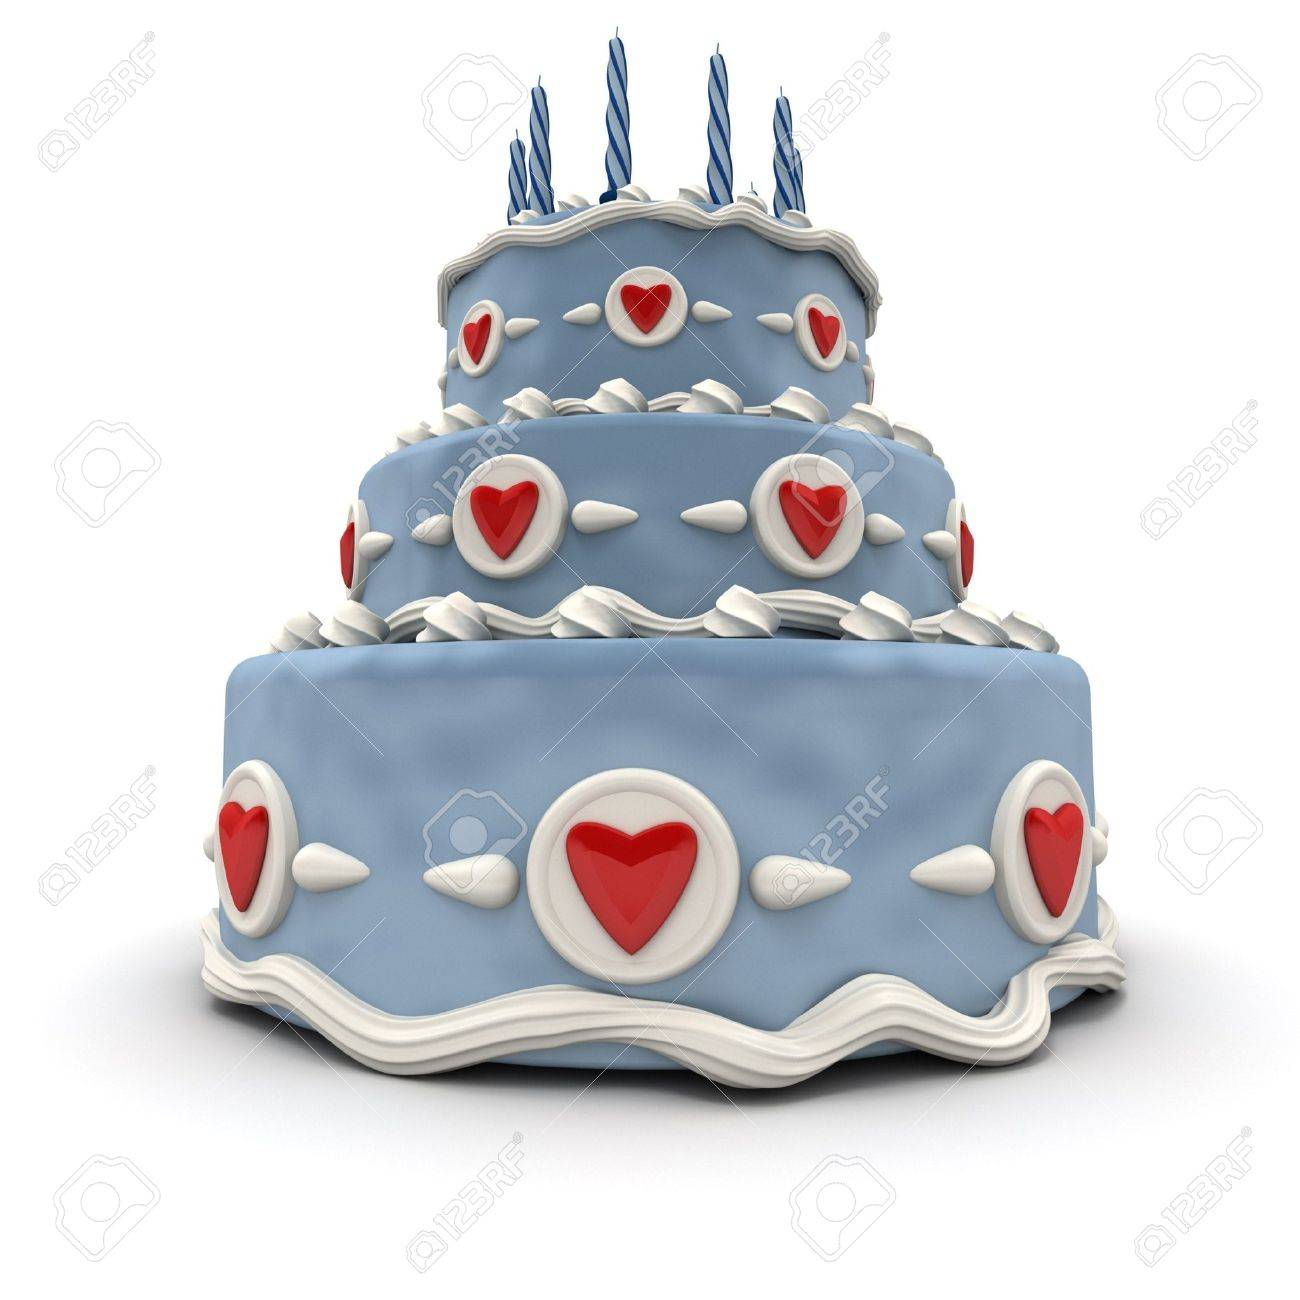 3D rendering of  a impressive blue three floor cake with red hearts and candles Standard-Bild - 9548792